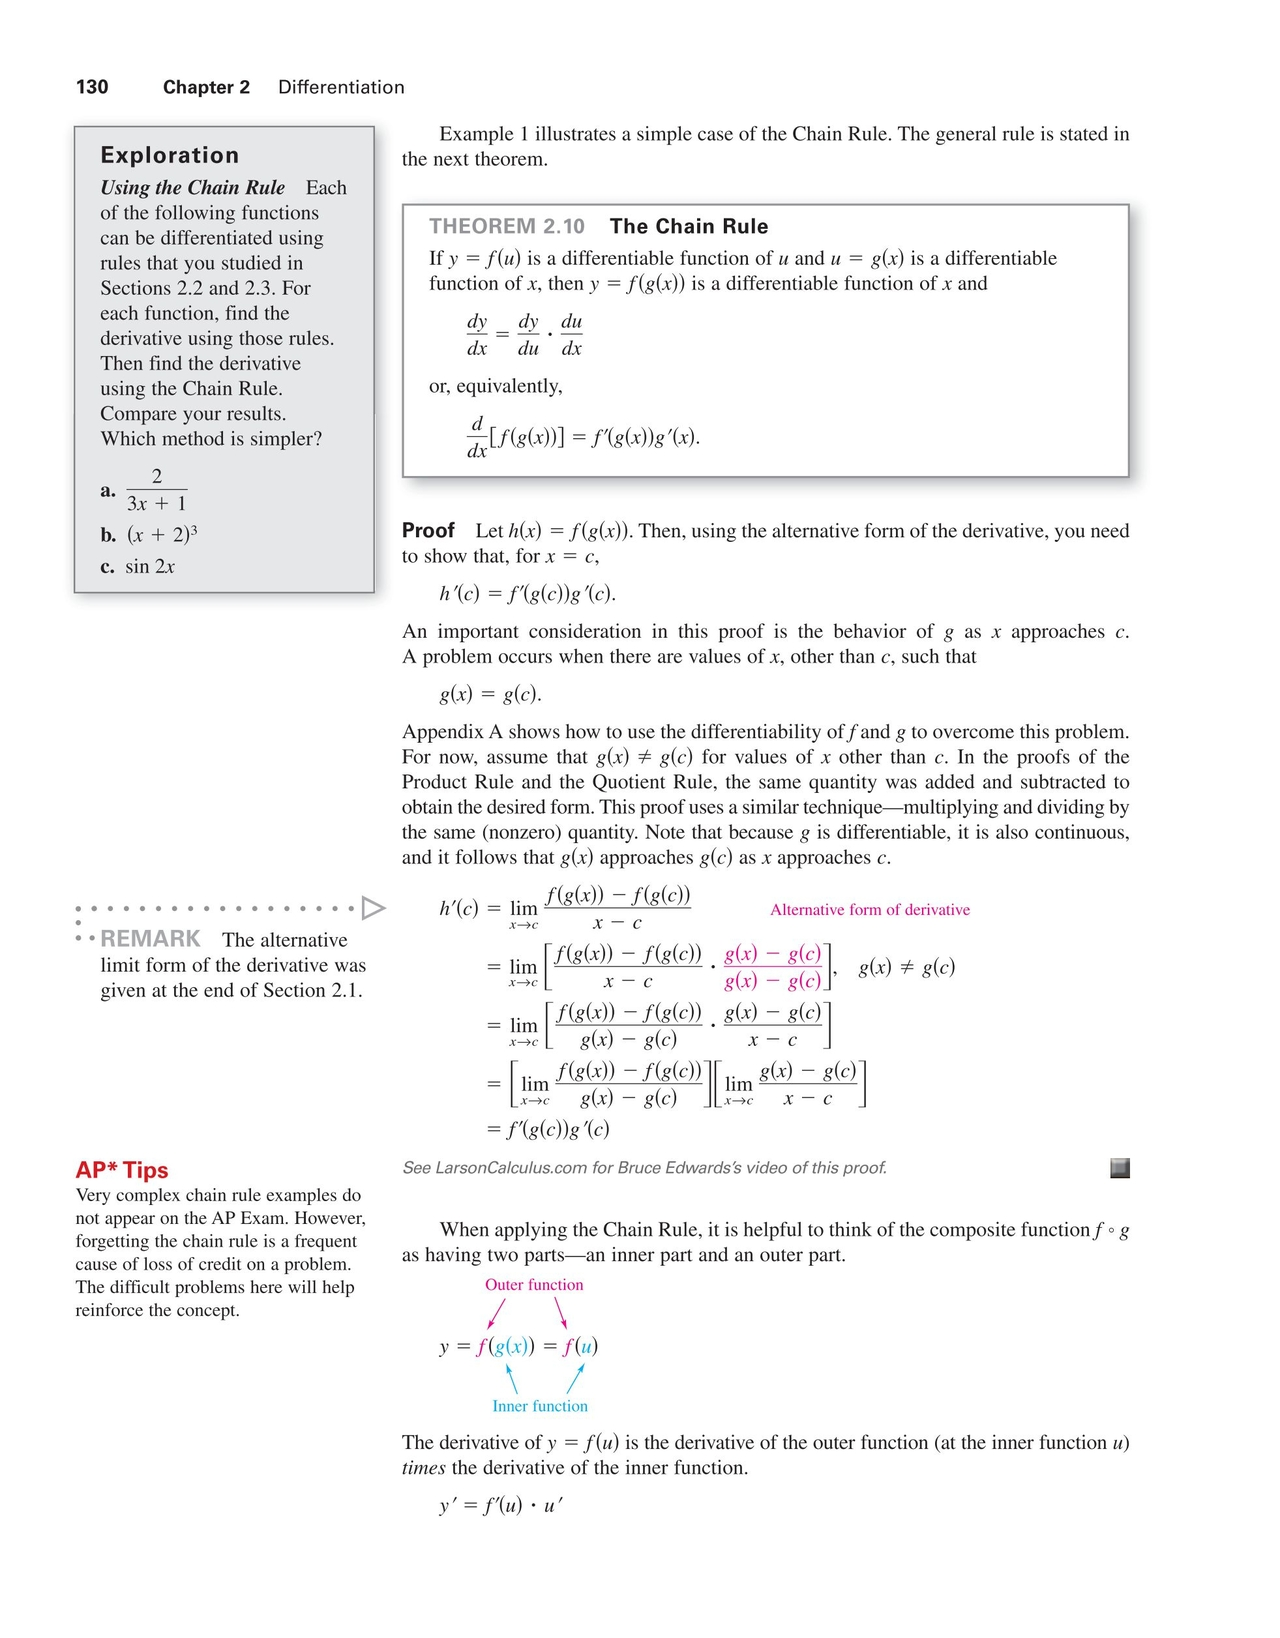 Calculus Of A Single Variable Clipart Hitech Vector Circuit Board Blank Vignette Fotosearch 9e Array Rh Nxtbook